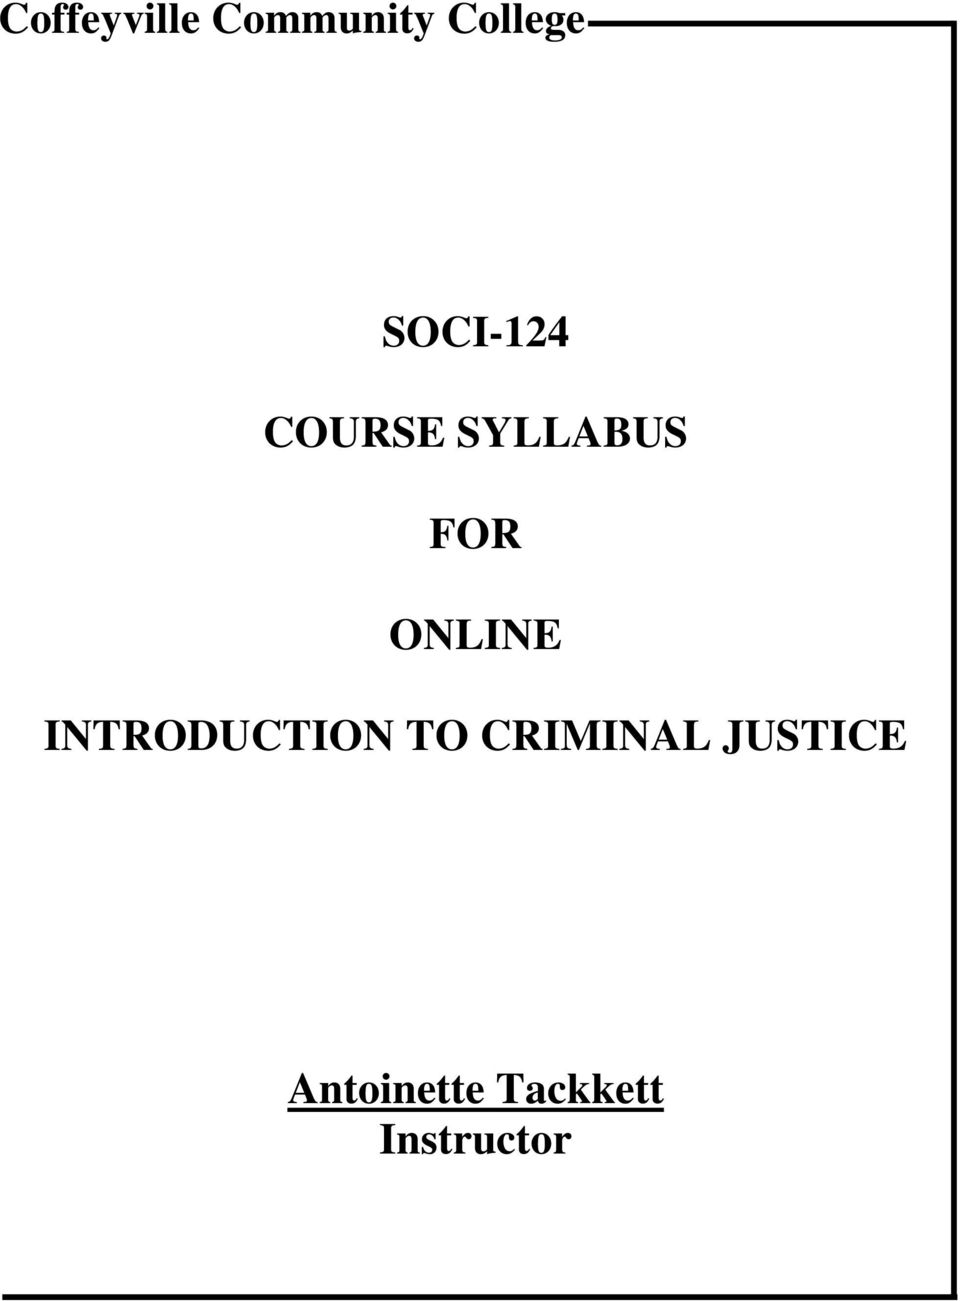 ONLINE INTRODUCTION TO CRIMINAL